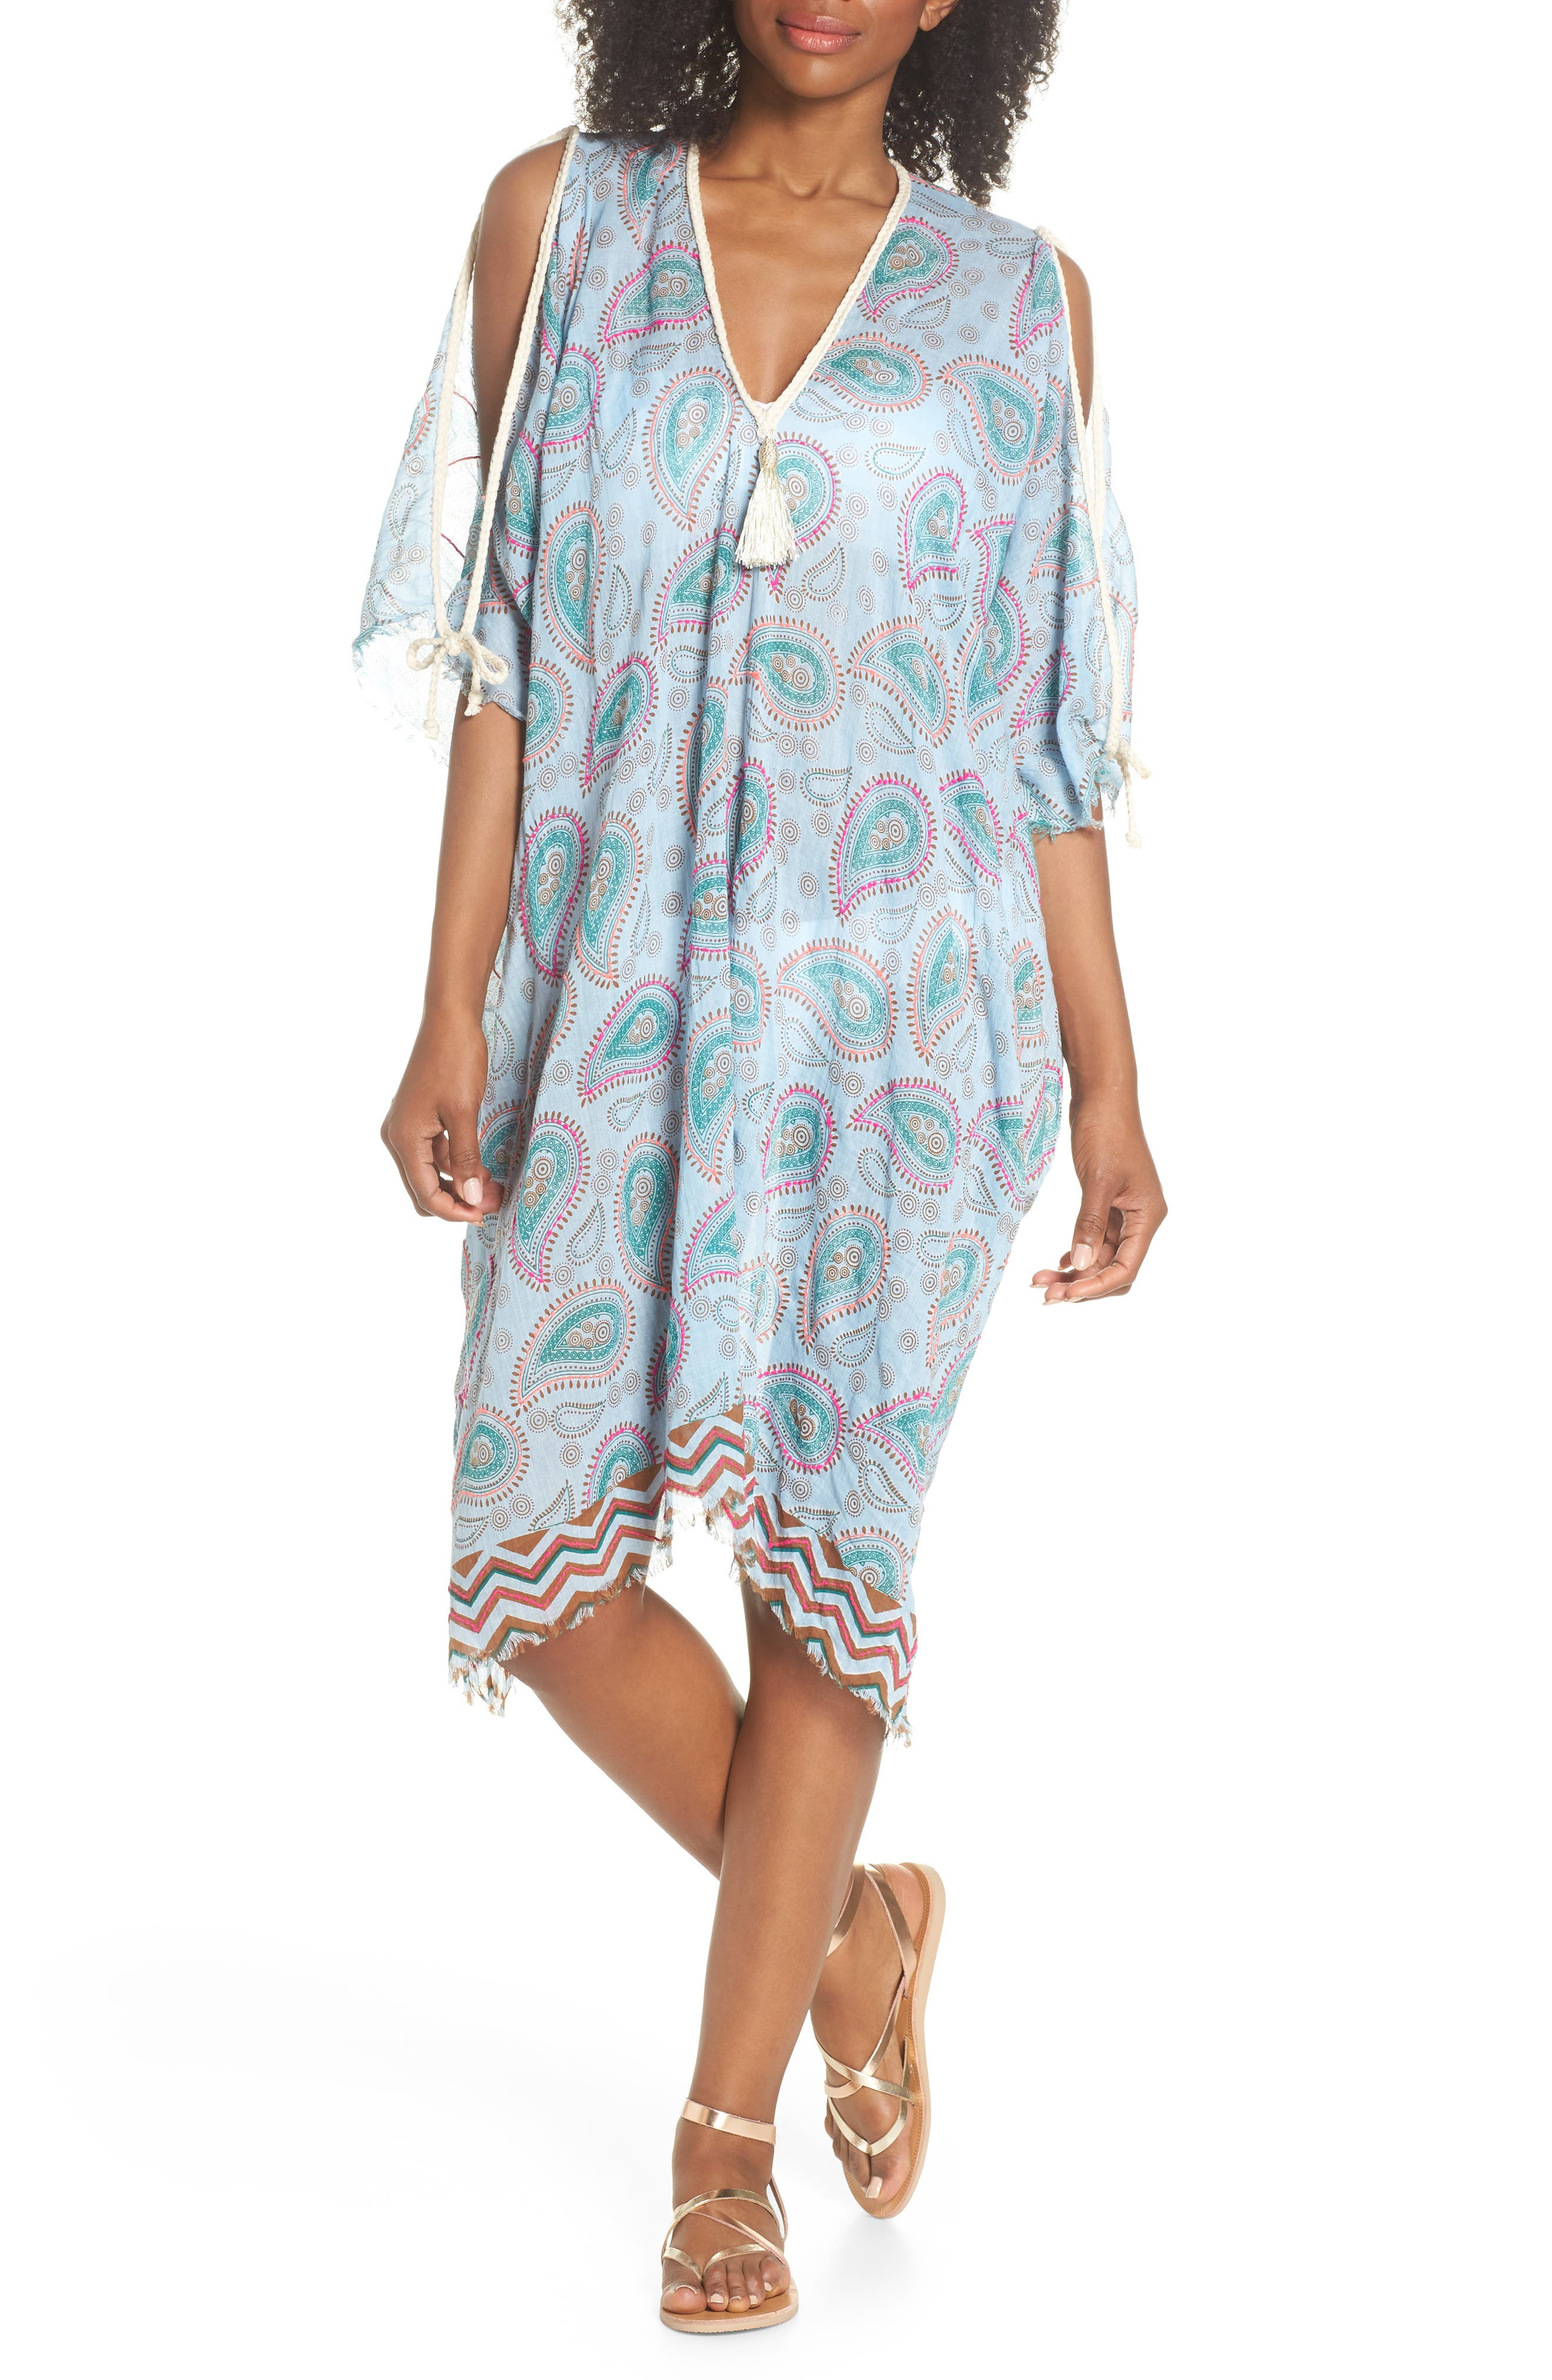 Women\'s POOL TO PARTY One Piece Swimsuits, Bikinis & Cover-Ups ...